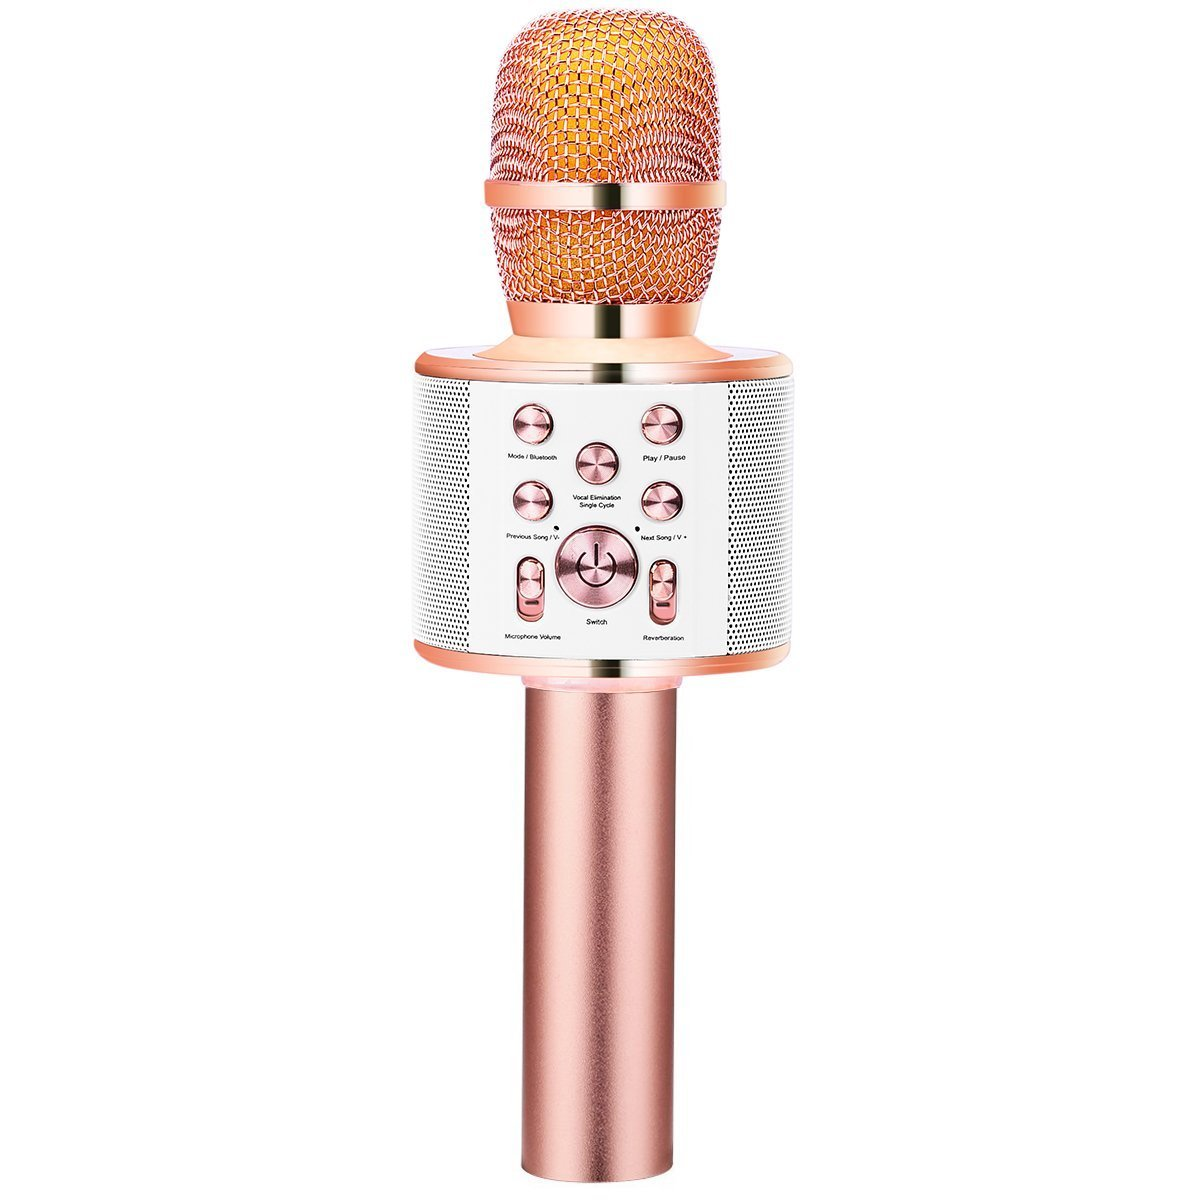 [Upgraded] VERKB Wireless Karaoke Microphone with Speaker Q10 Plus, Portable Bluetooth Singing Machine for iPhone Android Smartphone Home KTV, Birthday Party, Gift Idea (Rose Gold)